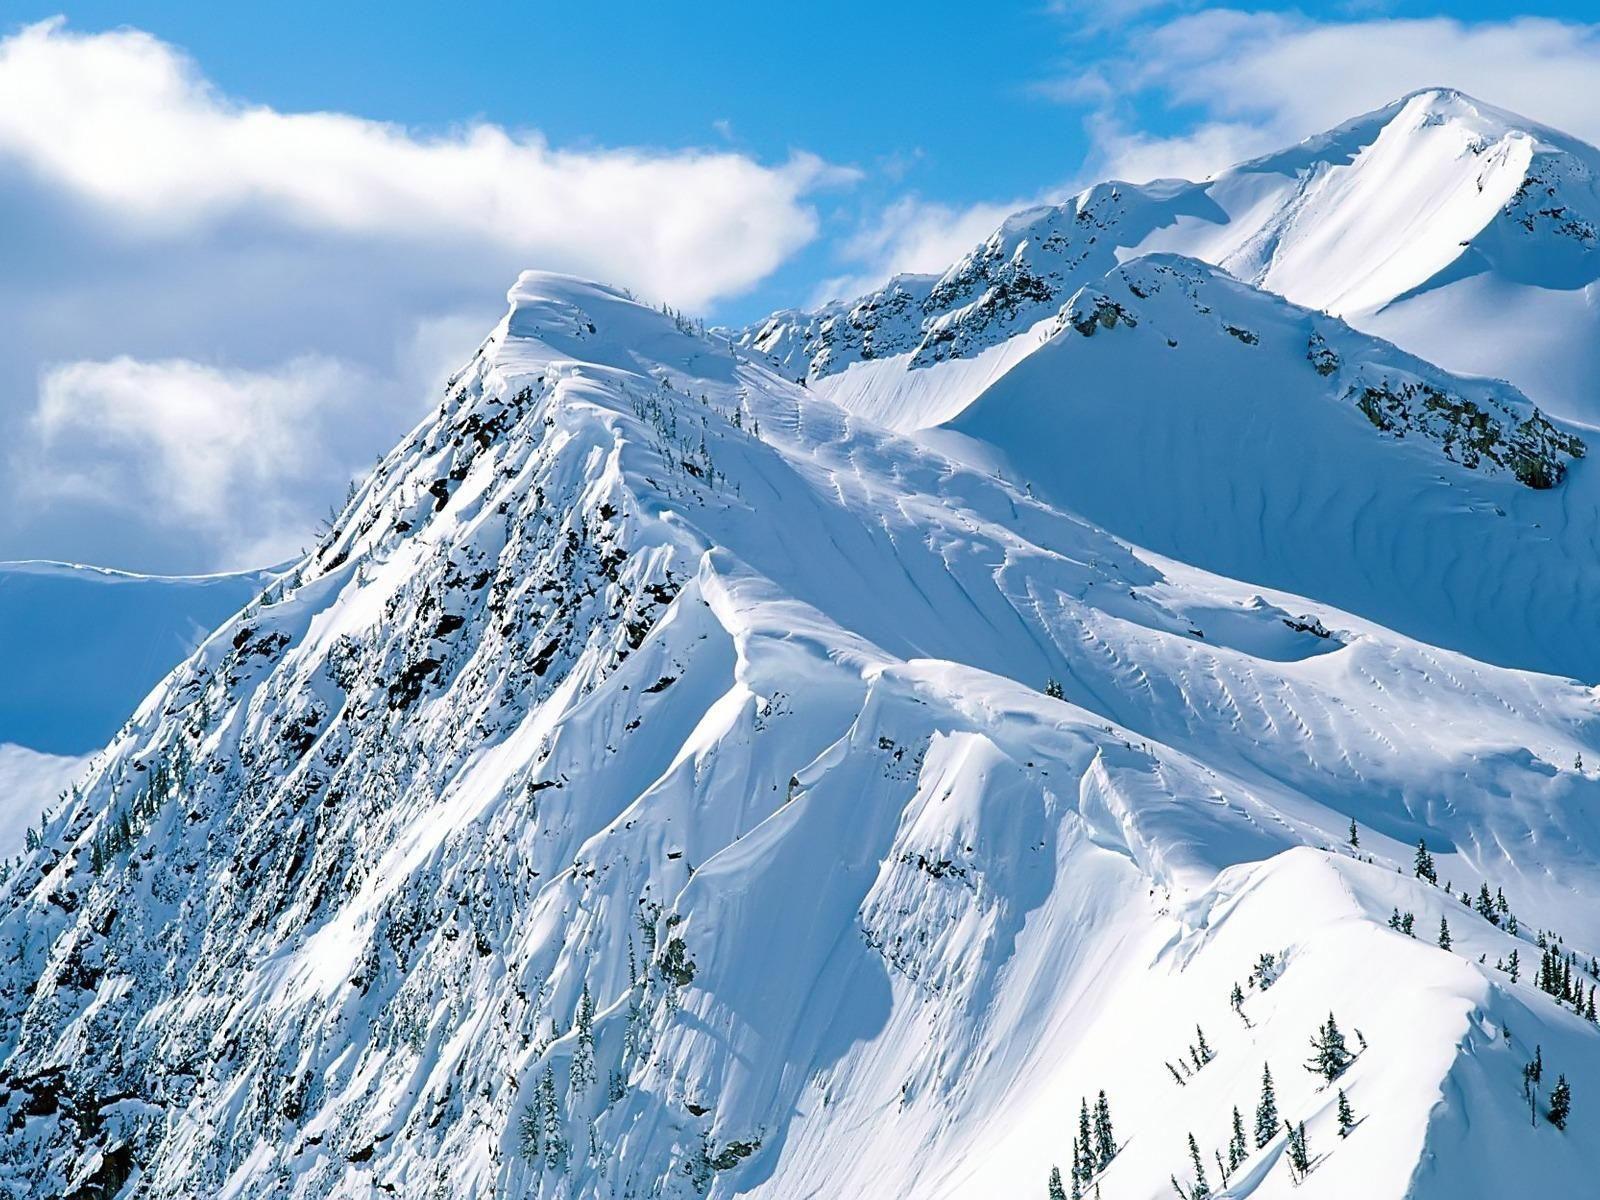 Amazing Nature Landscape Pic, Snow Mountain Under the Blue Sky, Pure and Clean World